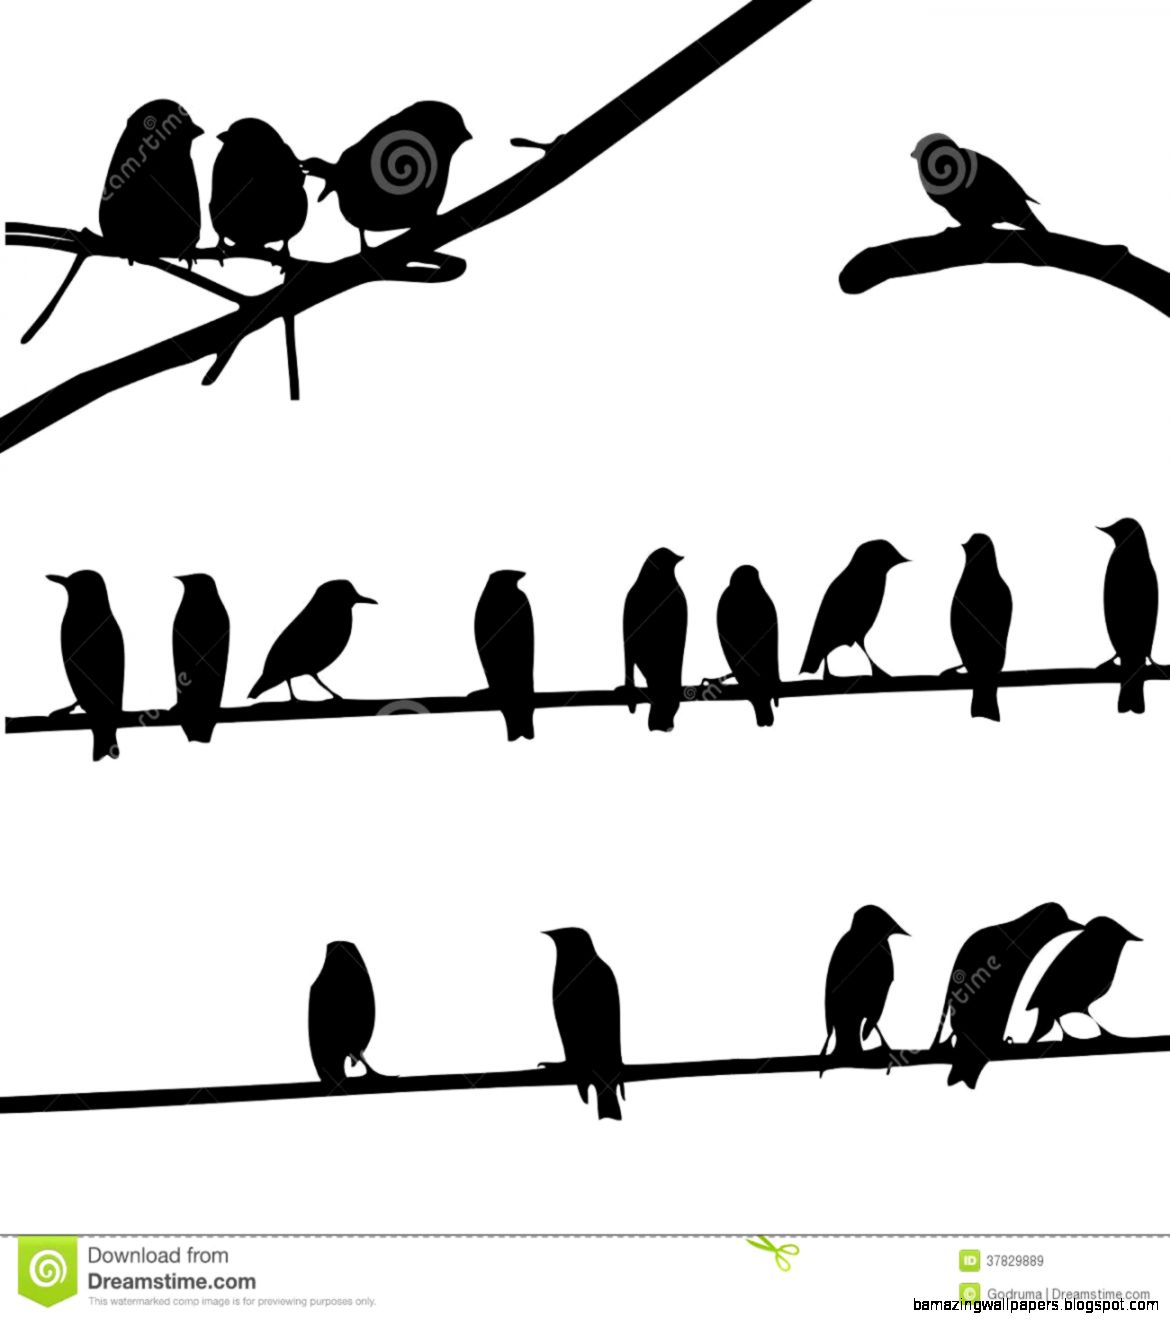 1170x1320 Bird On A Wire Silhouette Clipart Amazing Wallpapers